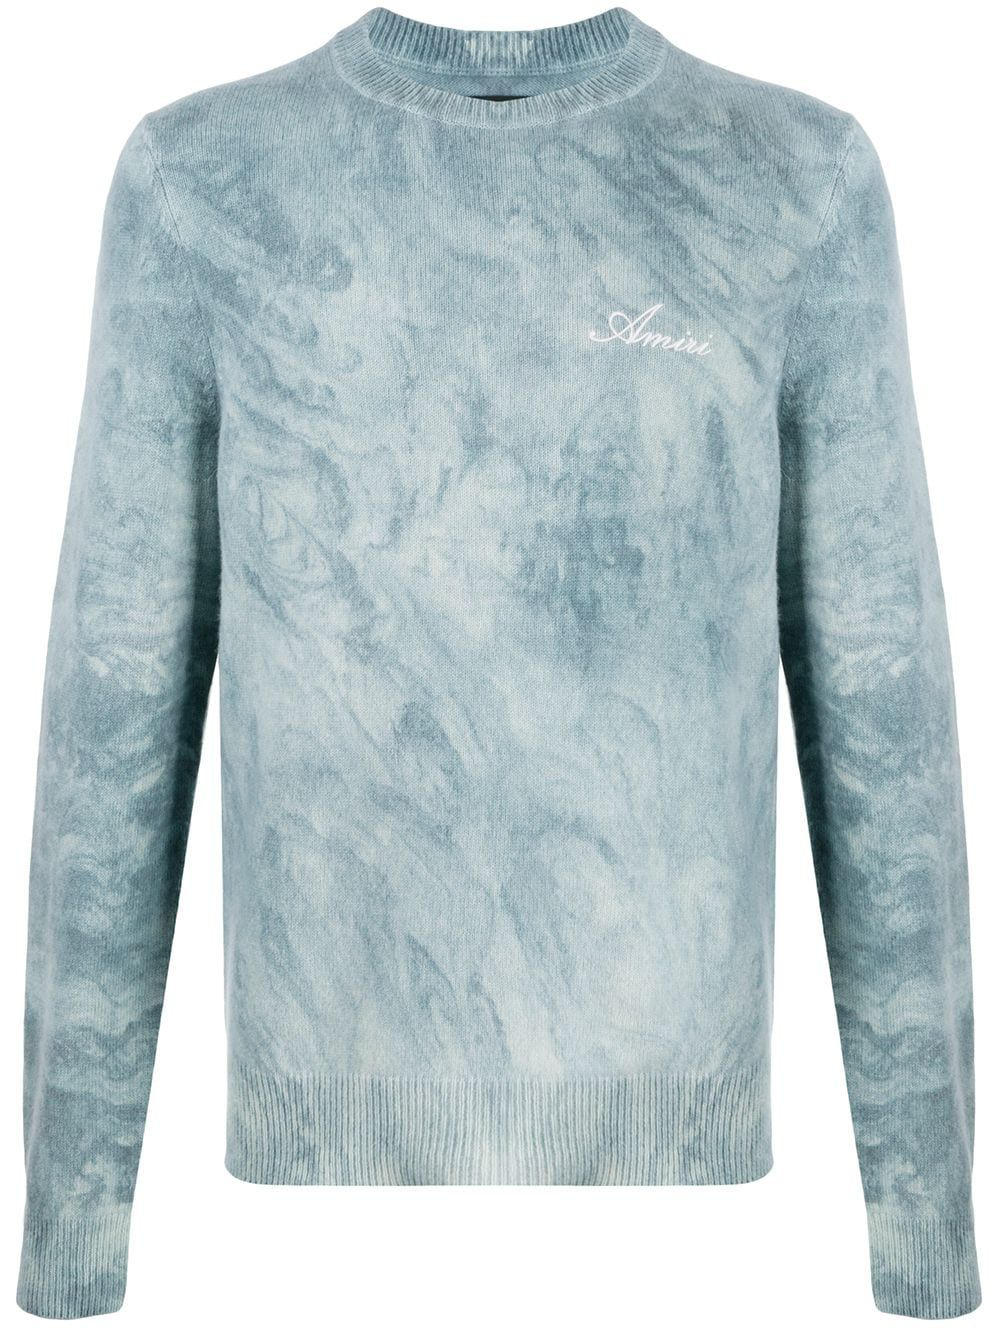 Amiri AMIRI MEN'S GREY CASHMERE SWEATER